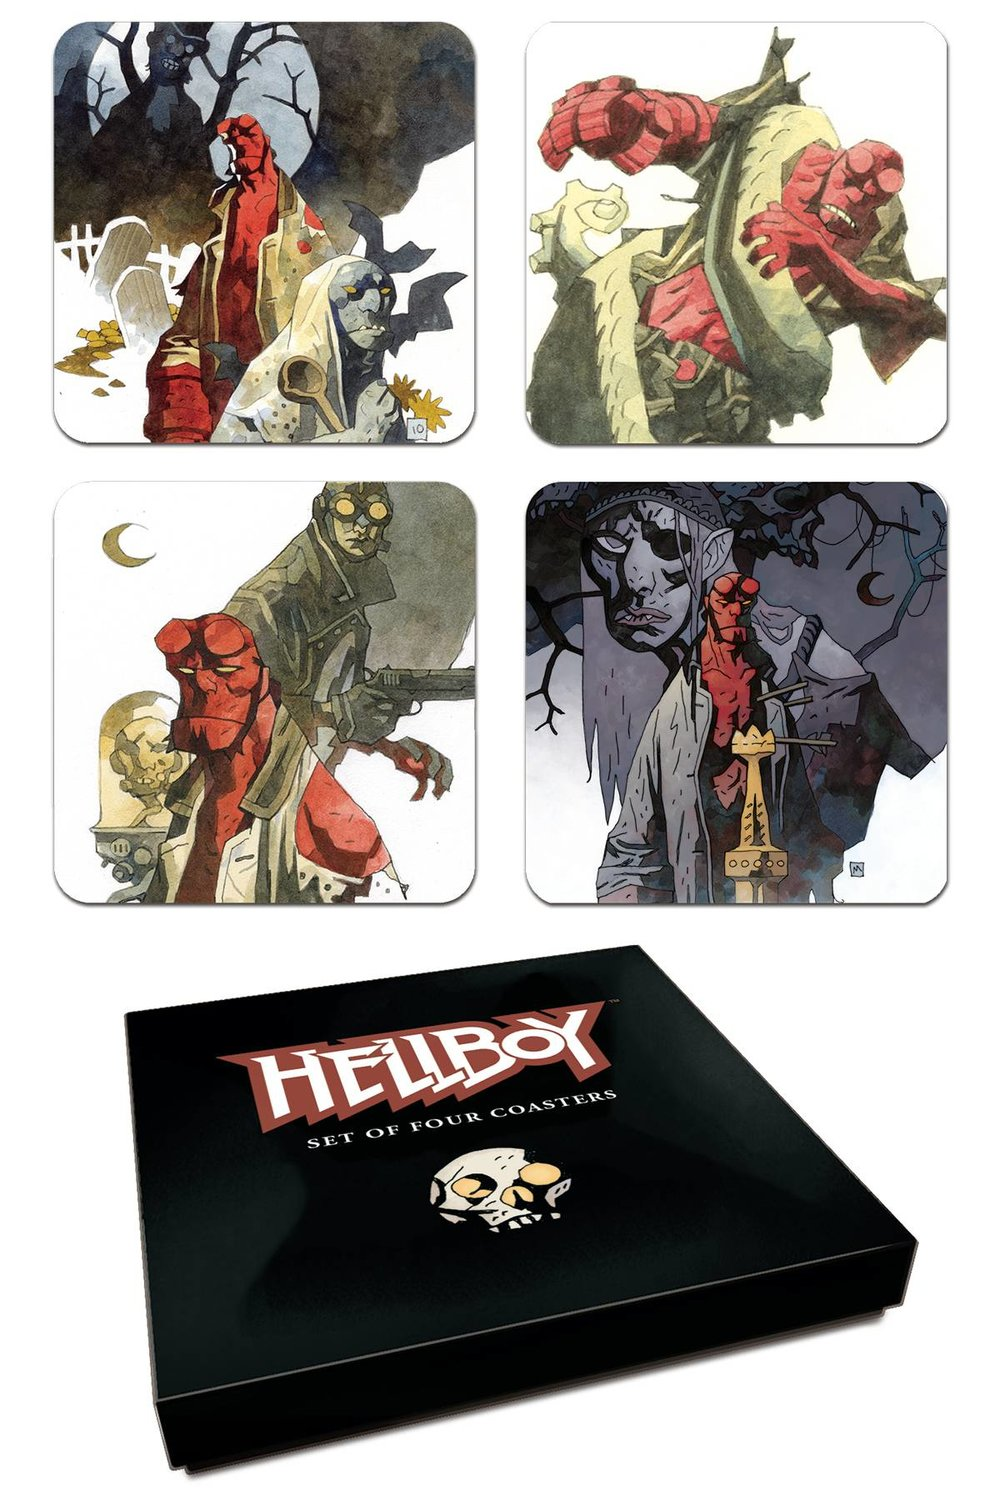 HELLBOY COASTER SET.jpg